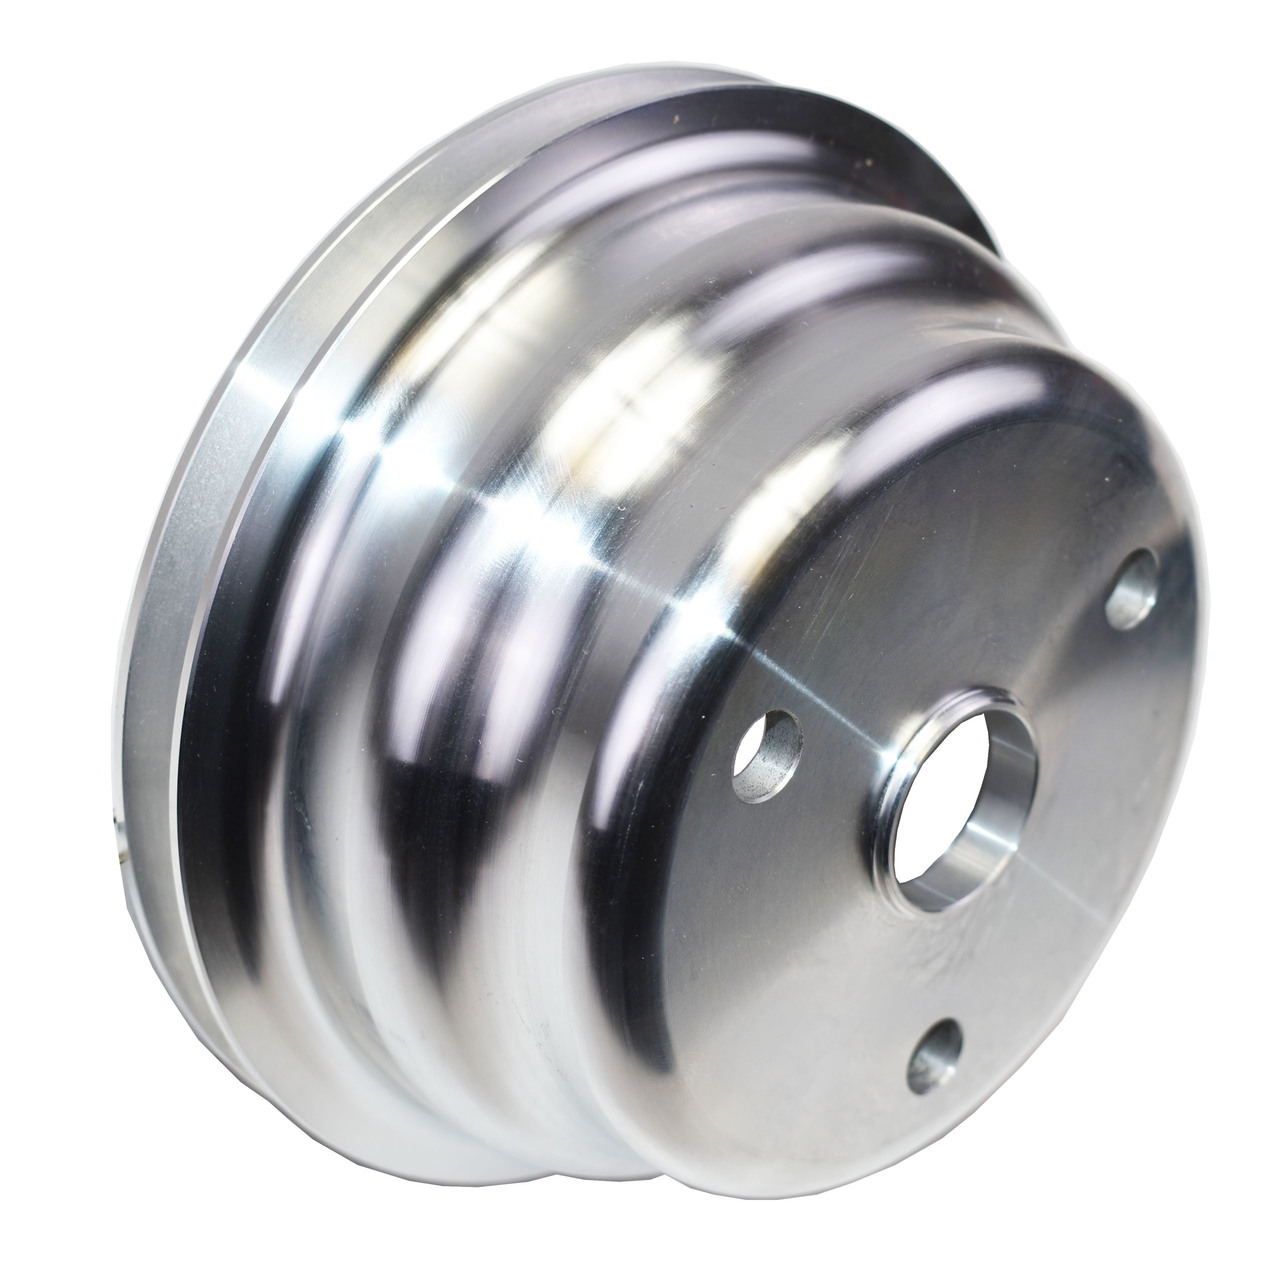 A-Team Performance CHEVY SMALL BLOCK LONG WATER PUMP SINGLE-GROOVE ALUMINUM CRANKSHAFT PULLEY